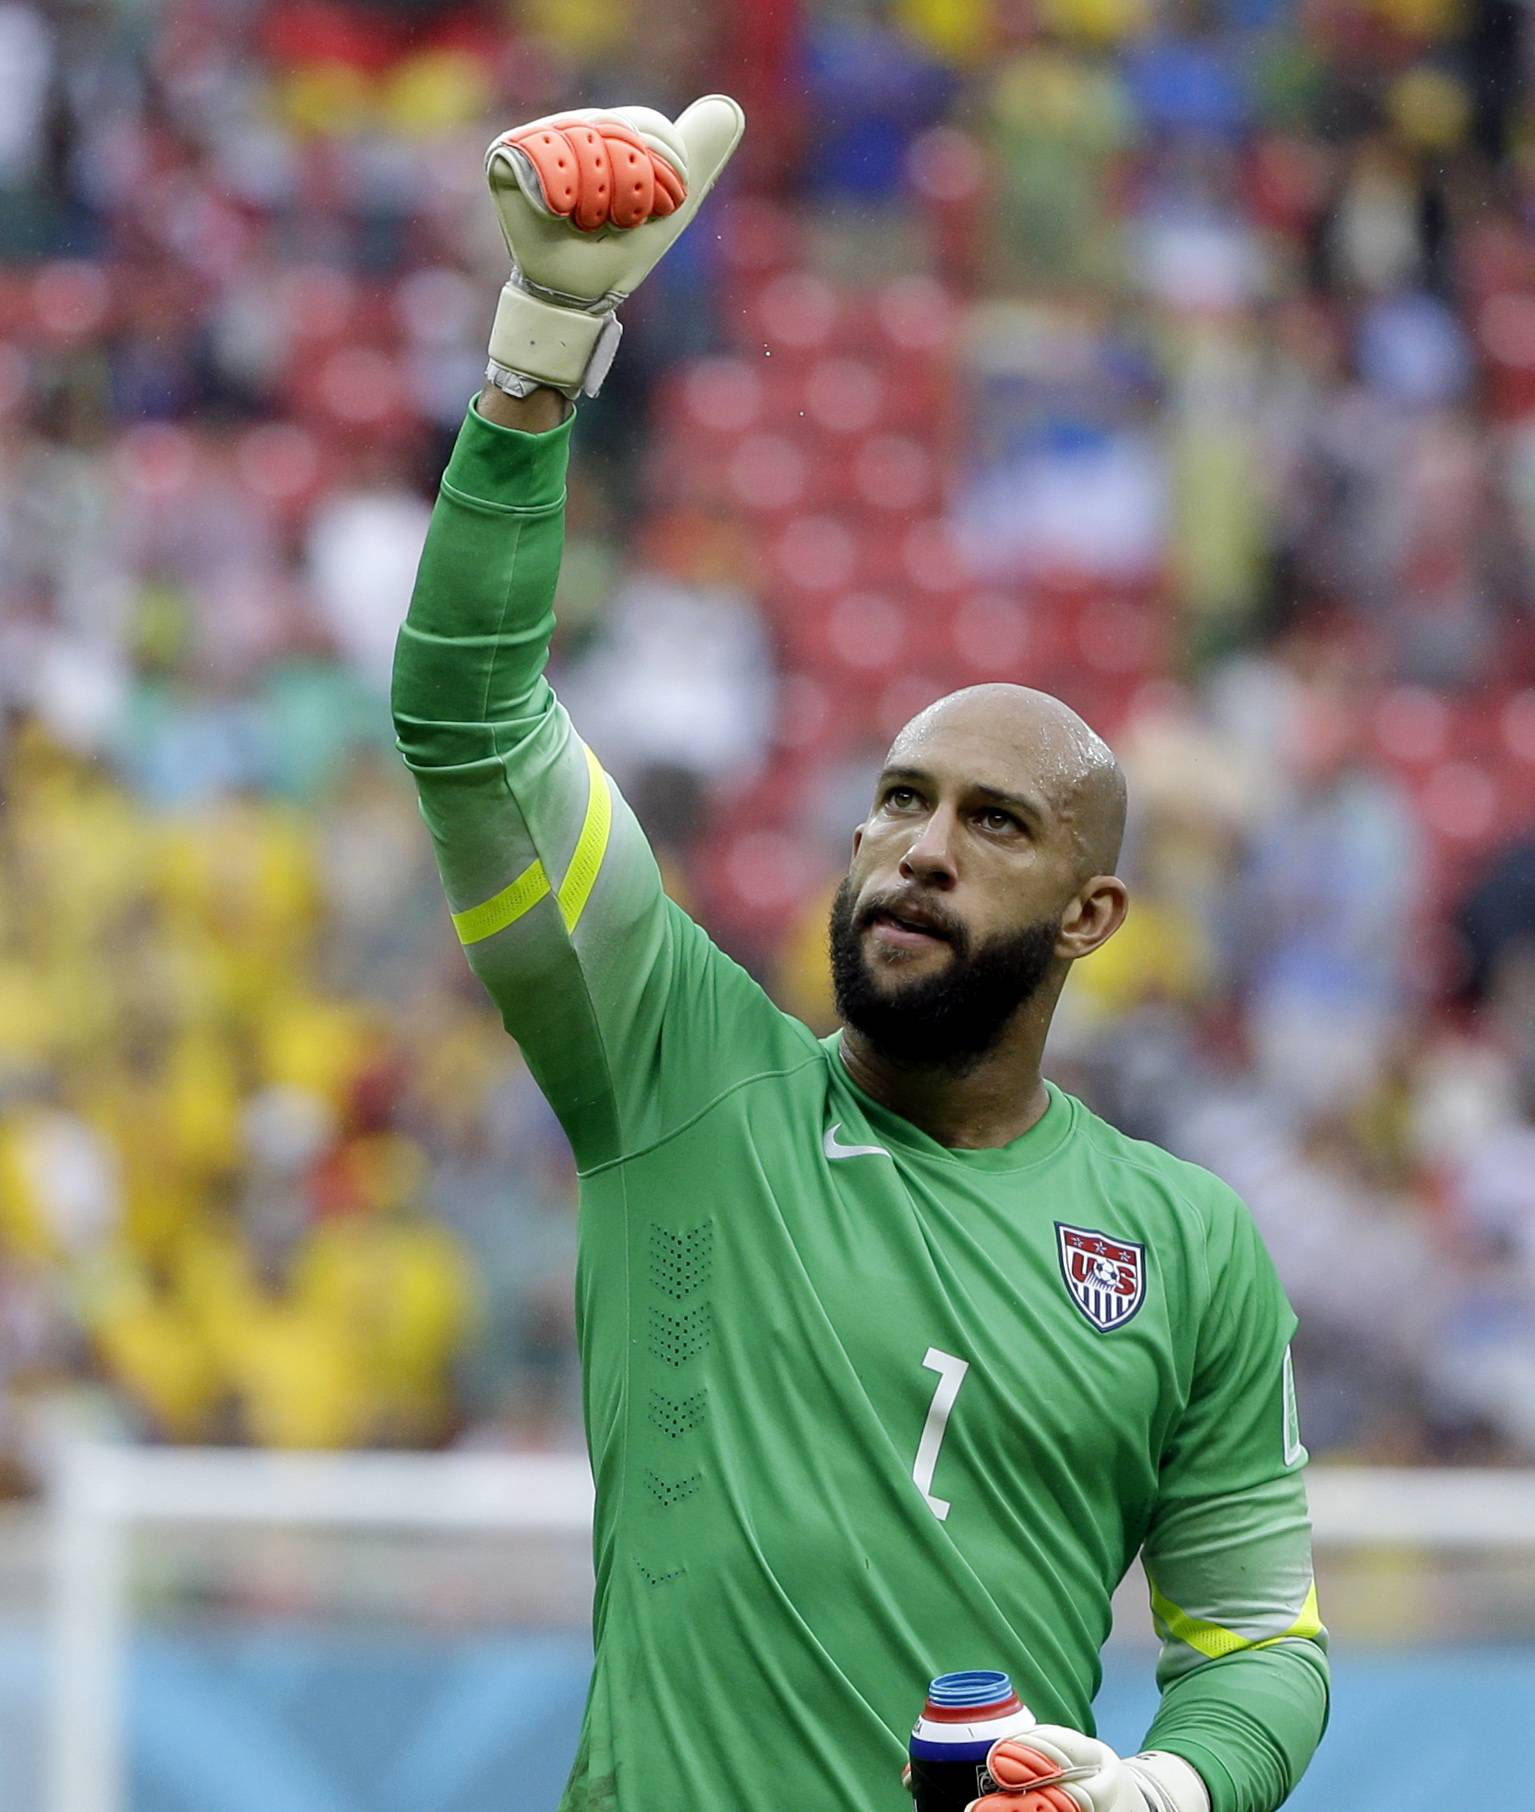 United States' goalkeeper Tim Howard gives a thumbs-up to supporters after qualifying for the next World Cup round following their 1-0 loss to Germany during the group G World Cup soccer match between the USA and Germany at the Arena Pernambuco in Recife, Brazil, Thursday, June 26, 2014.